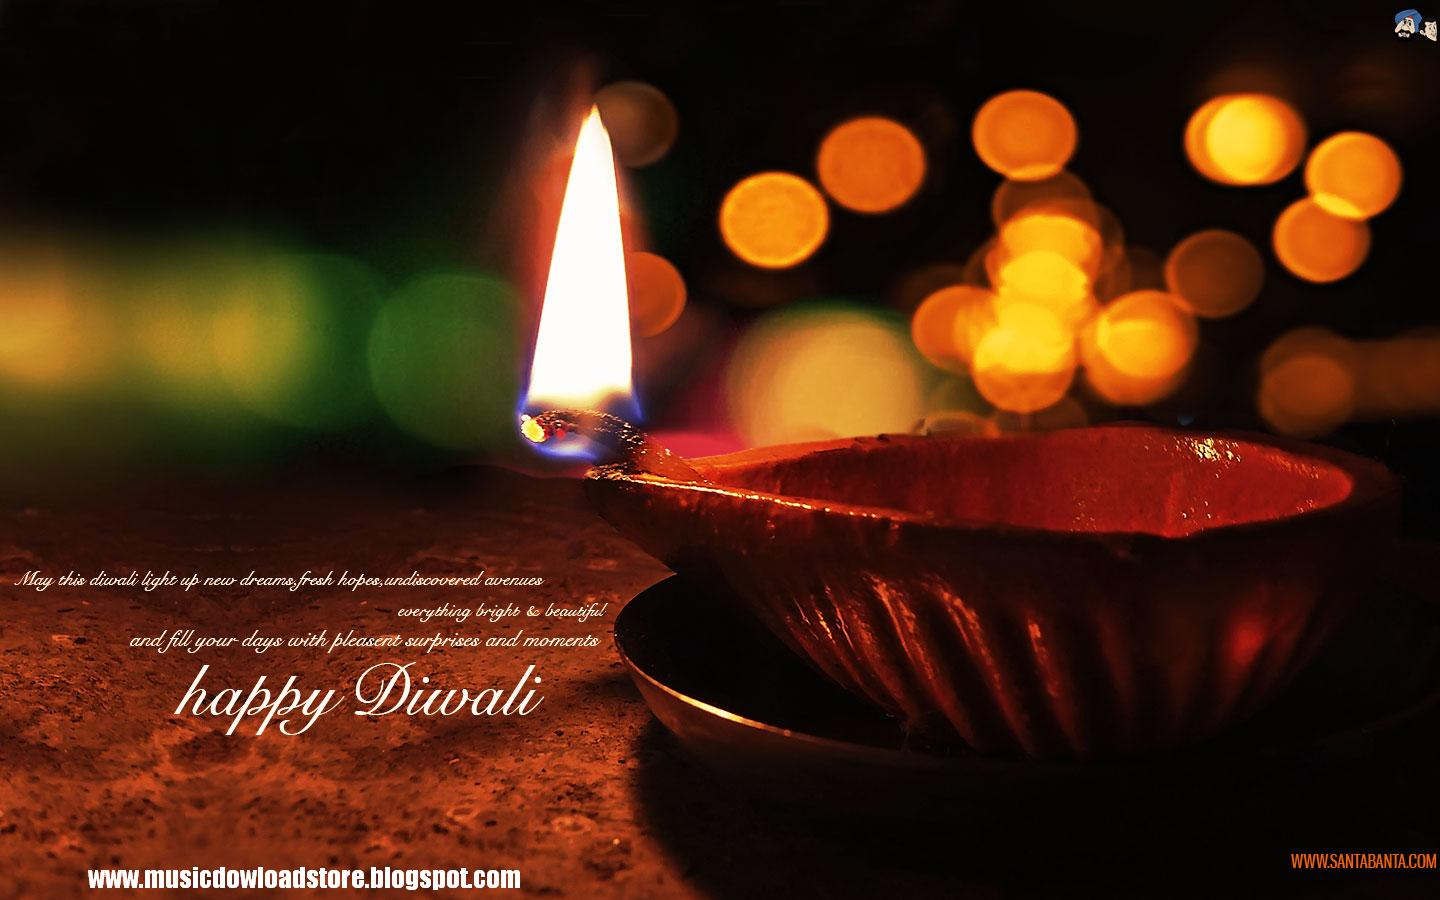 MUSIC DOWNLOAD STORE: Diwali 2010 Celebrations - Laxmi ...